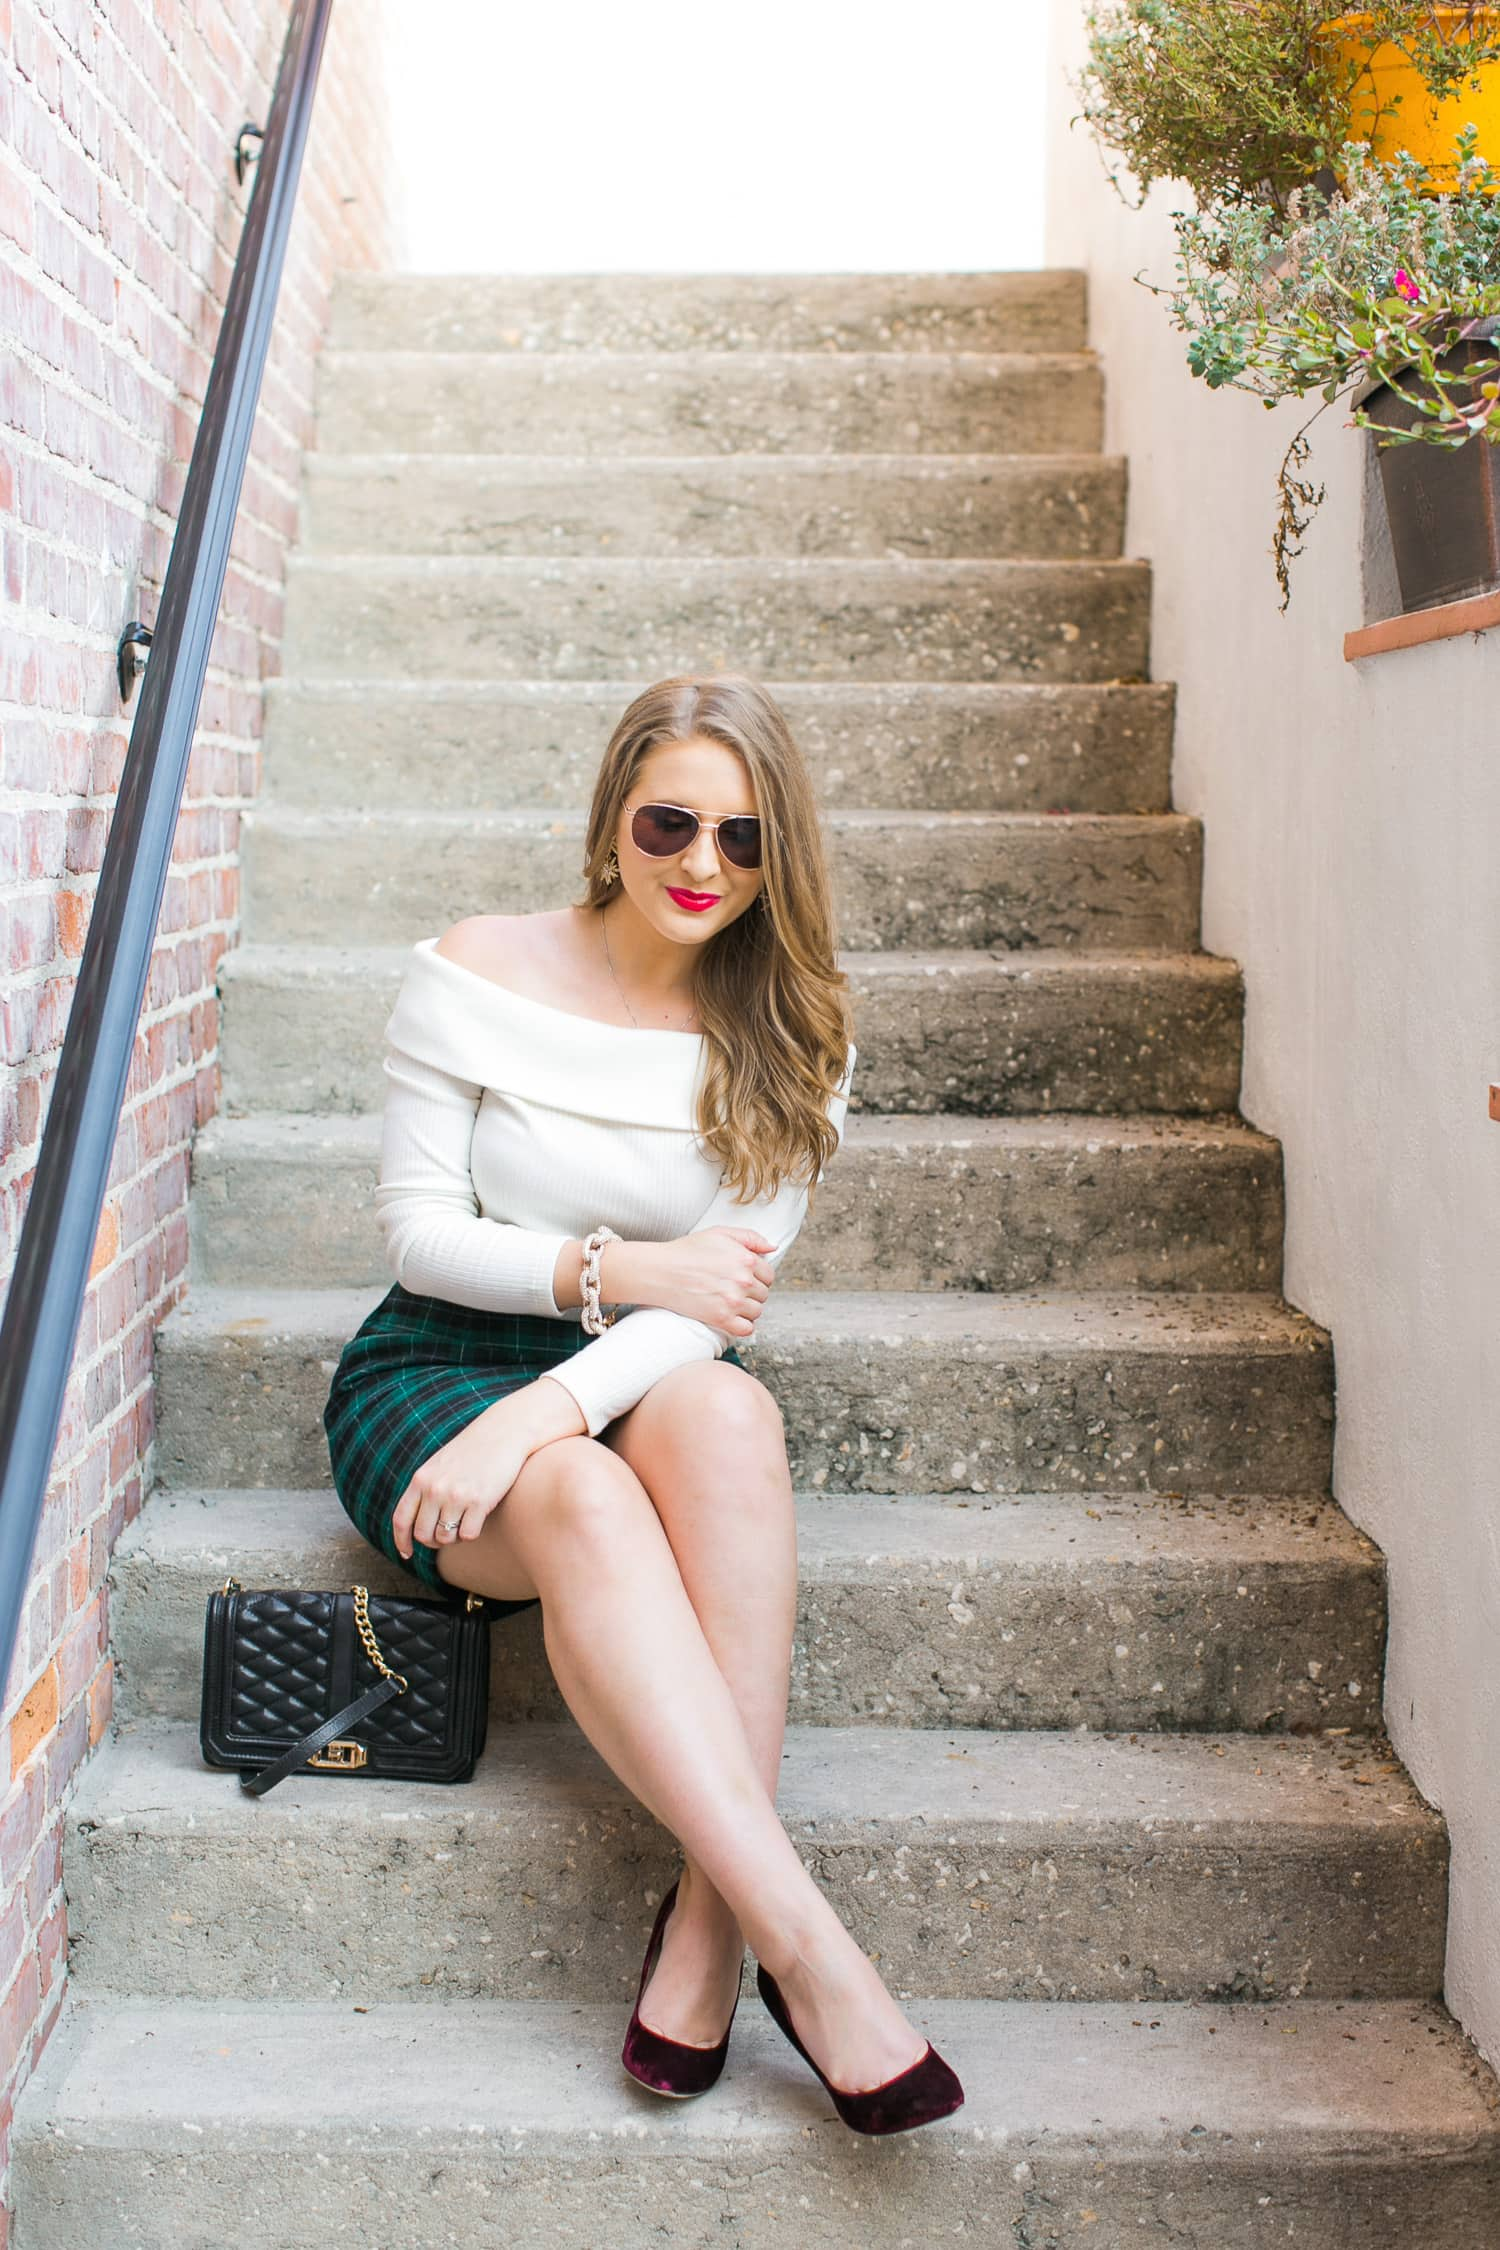 preppy-christmas-party-outfit-idea-rose-gold-foster-grant-sunglasses-velvet-pumps-off-shoulder-sweater-plaid-skirt-002